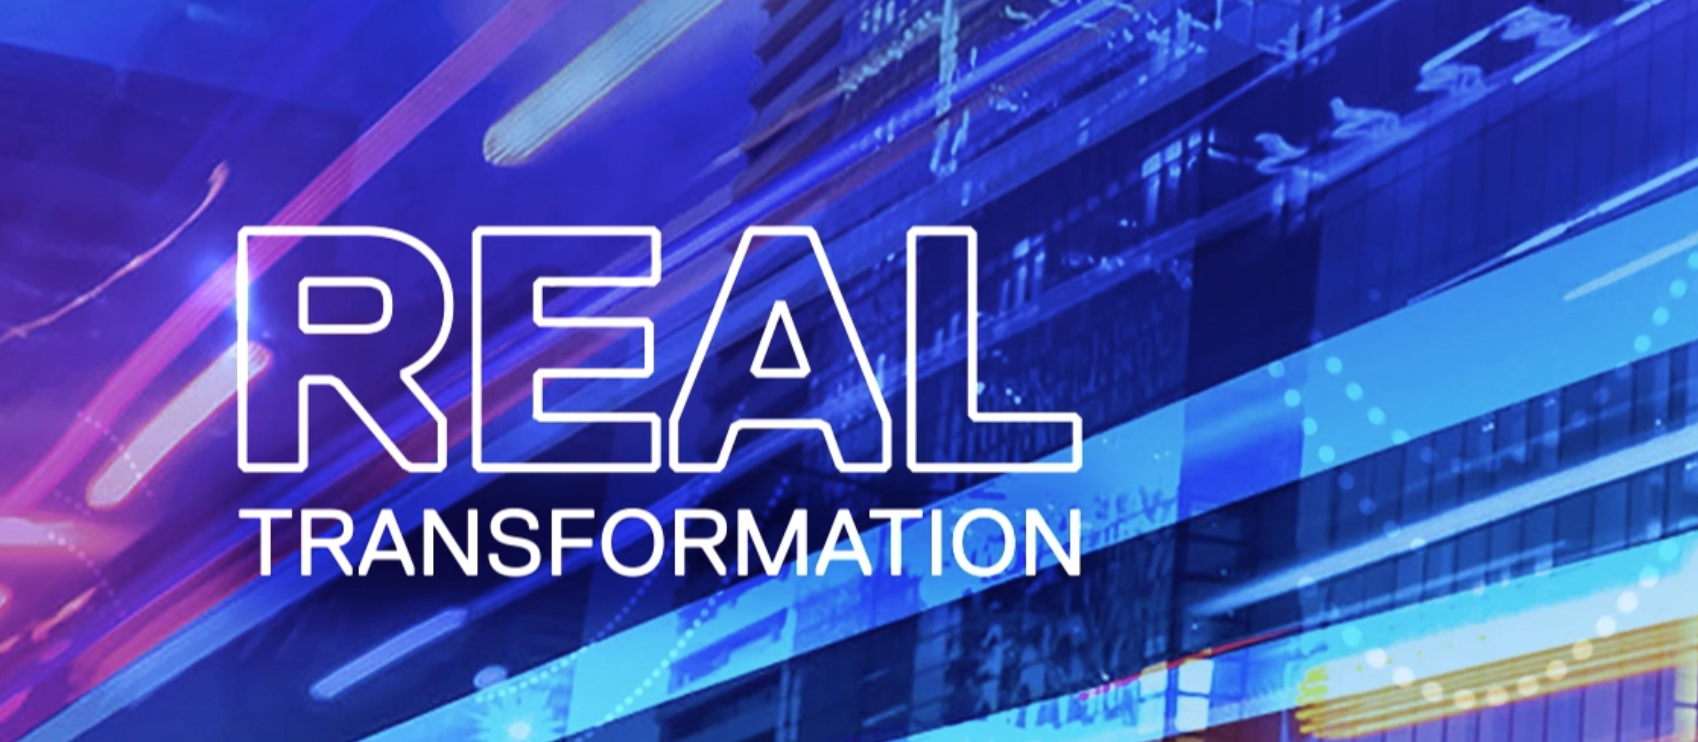 Watch live, exclusive interviews and analysis at Dell